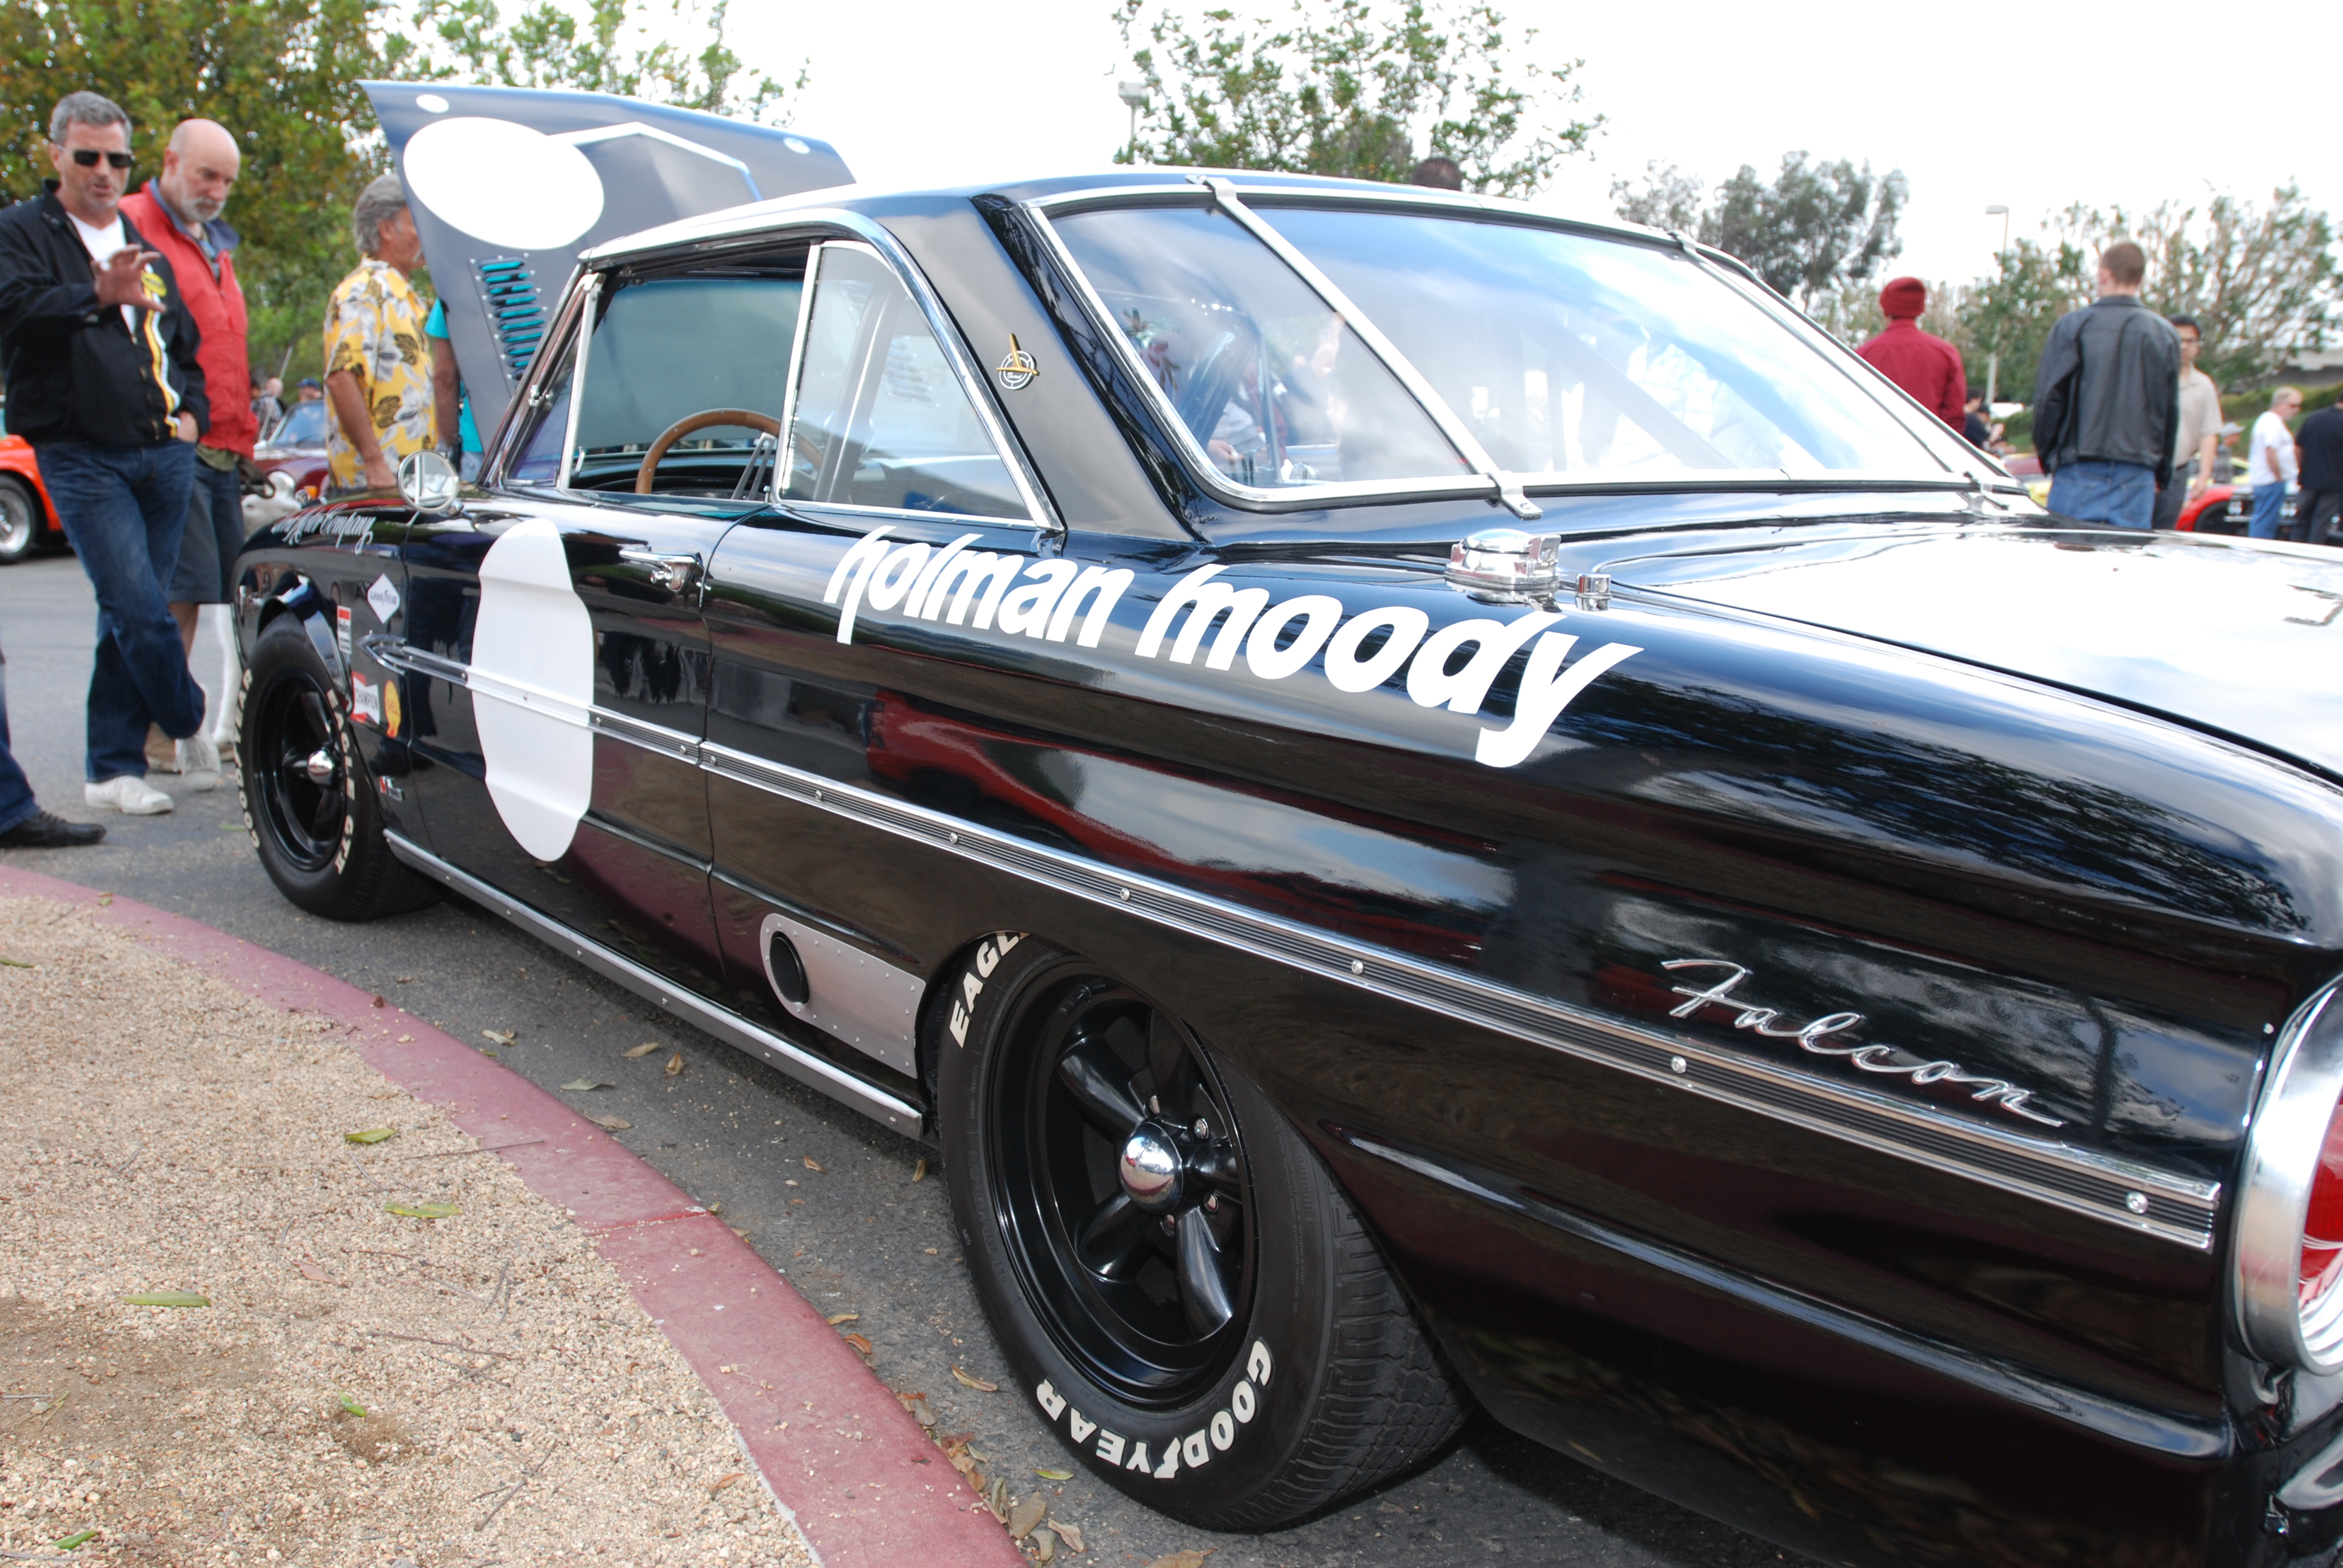 Black 1963 Ford Falcon Sprint /Trans AM racer_3/4 rear fender view and